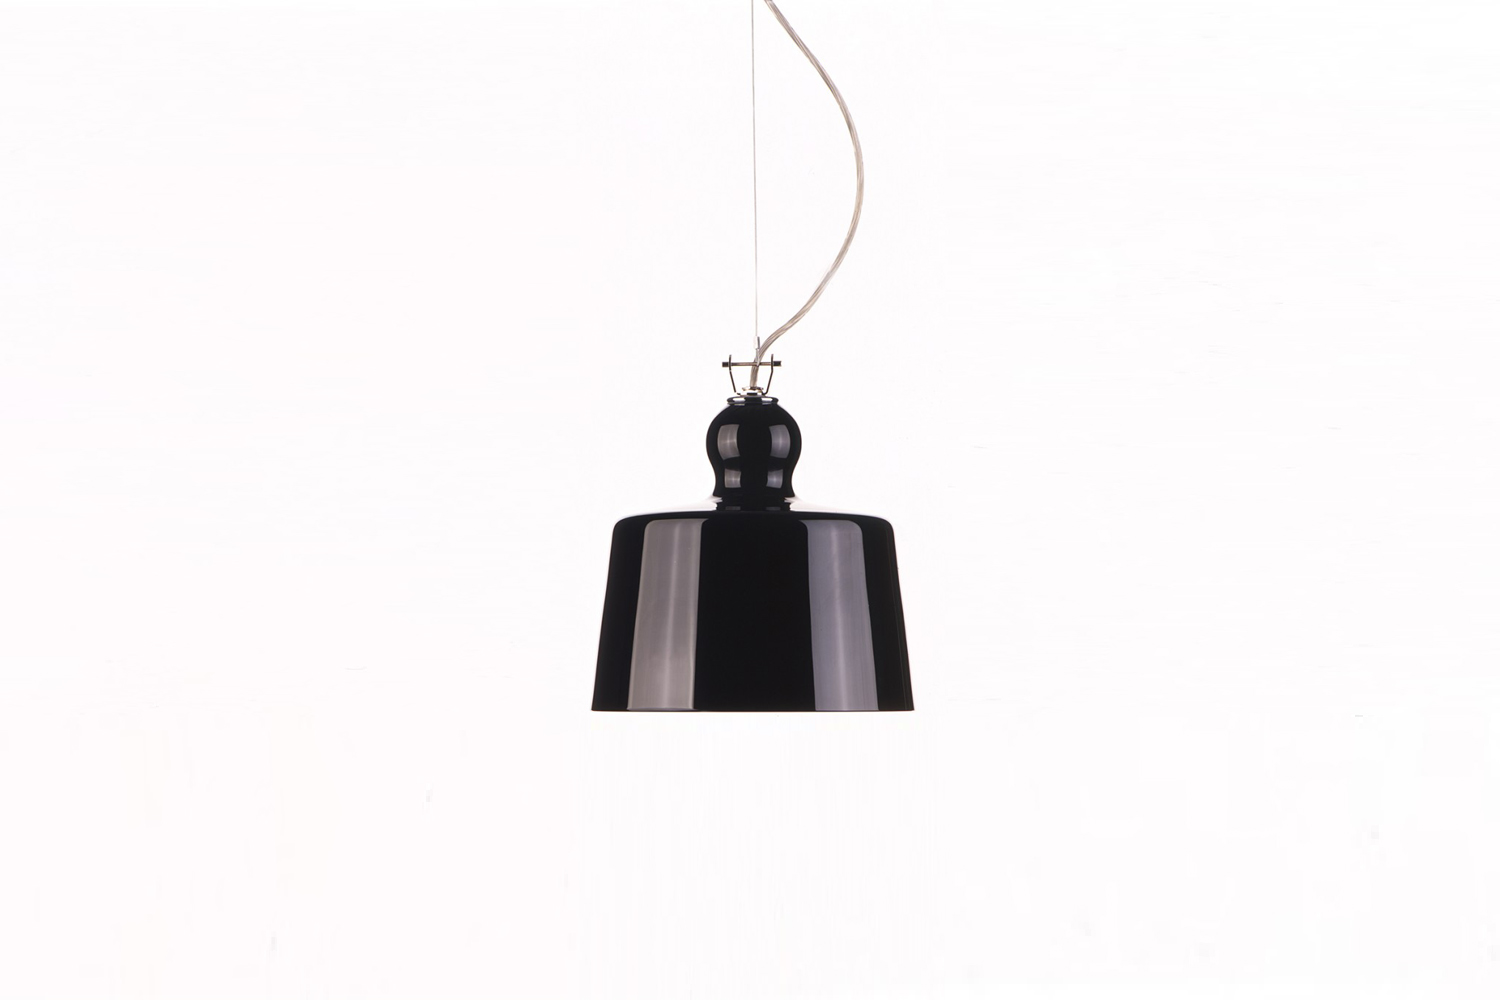 Designed by Michele de Lucchi, the Acquatinta Pendant in high shine black is $800 from Lumens.